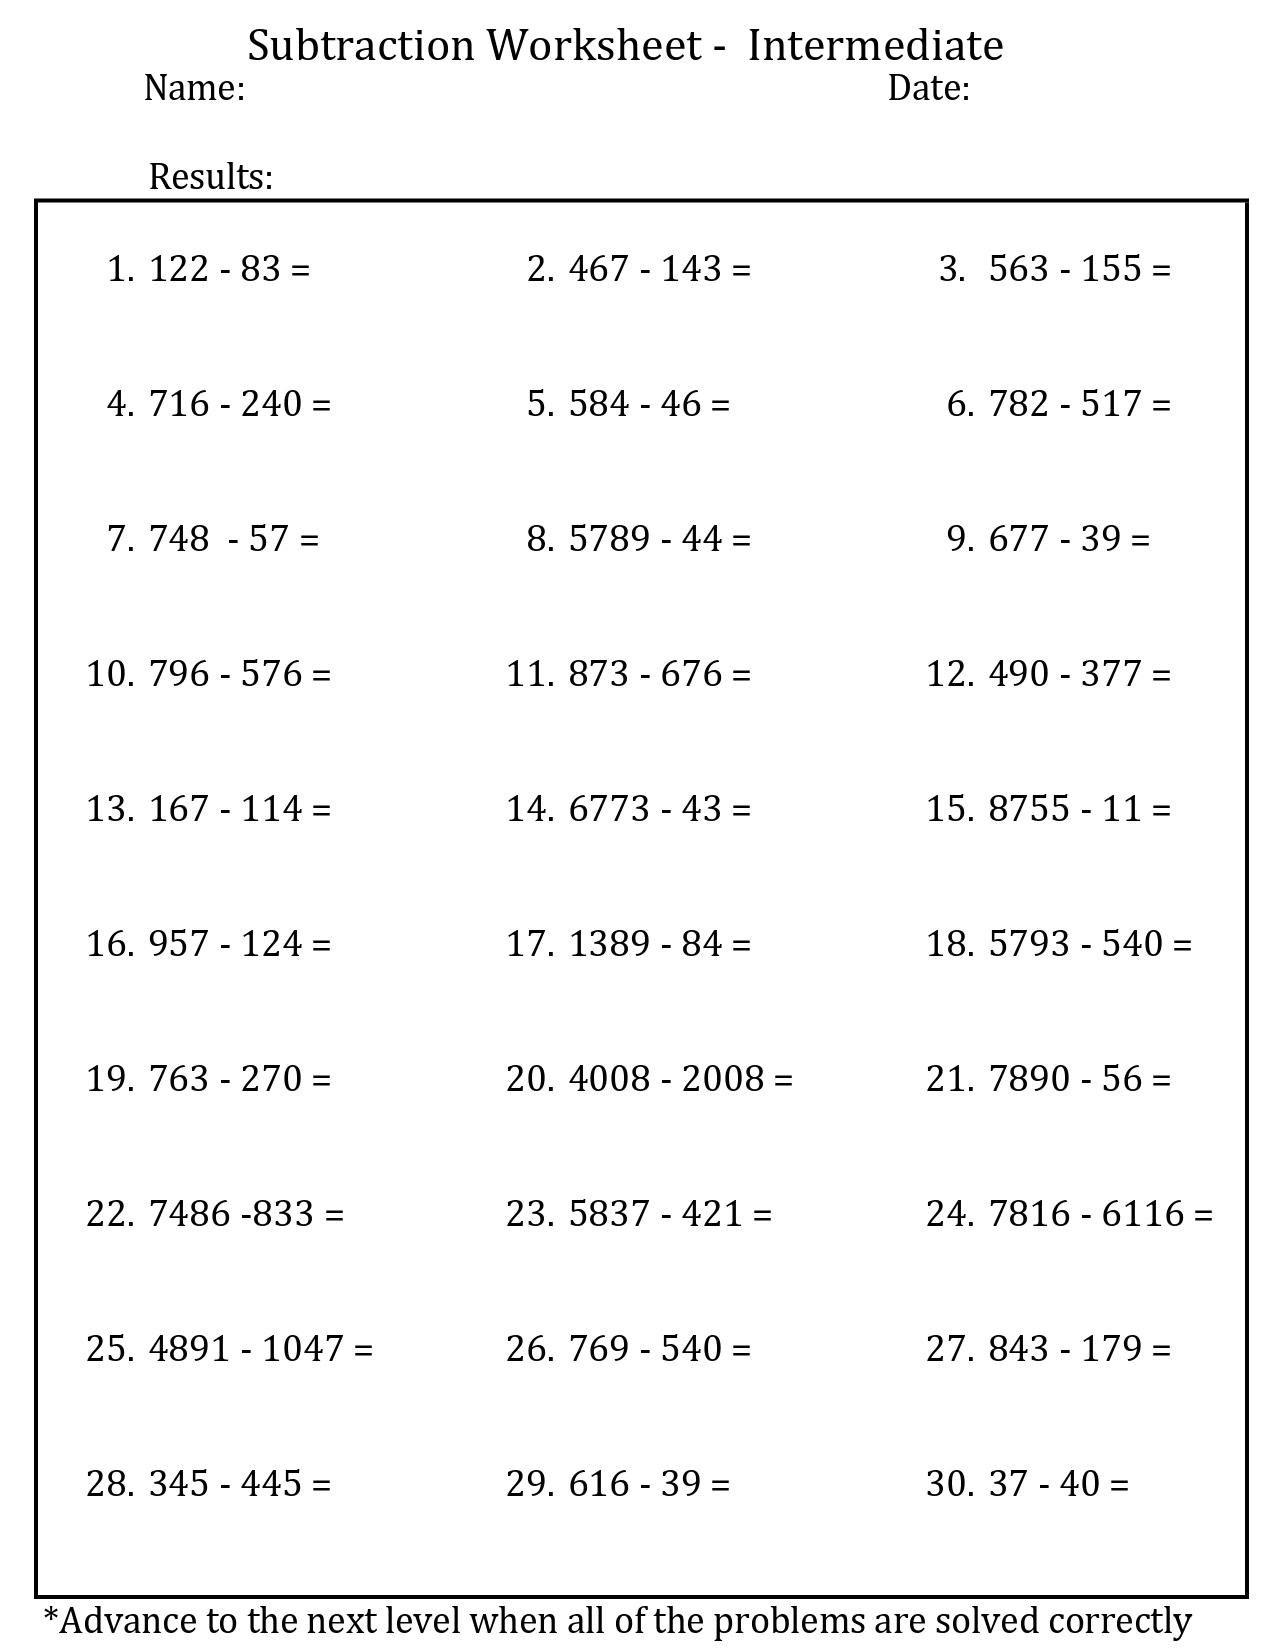 Printable basic subtraction worksheet intermediate